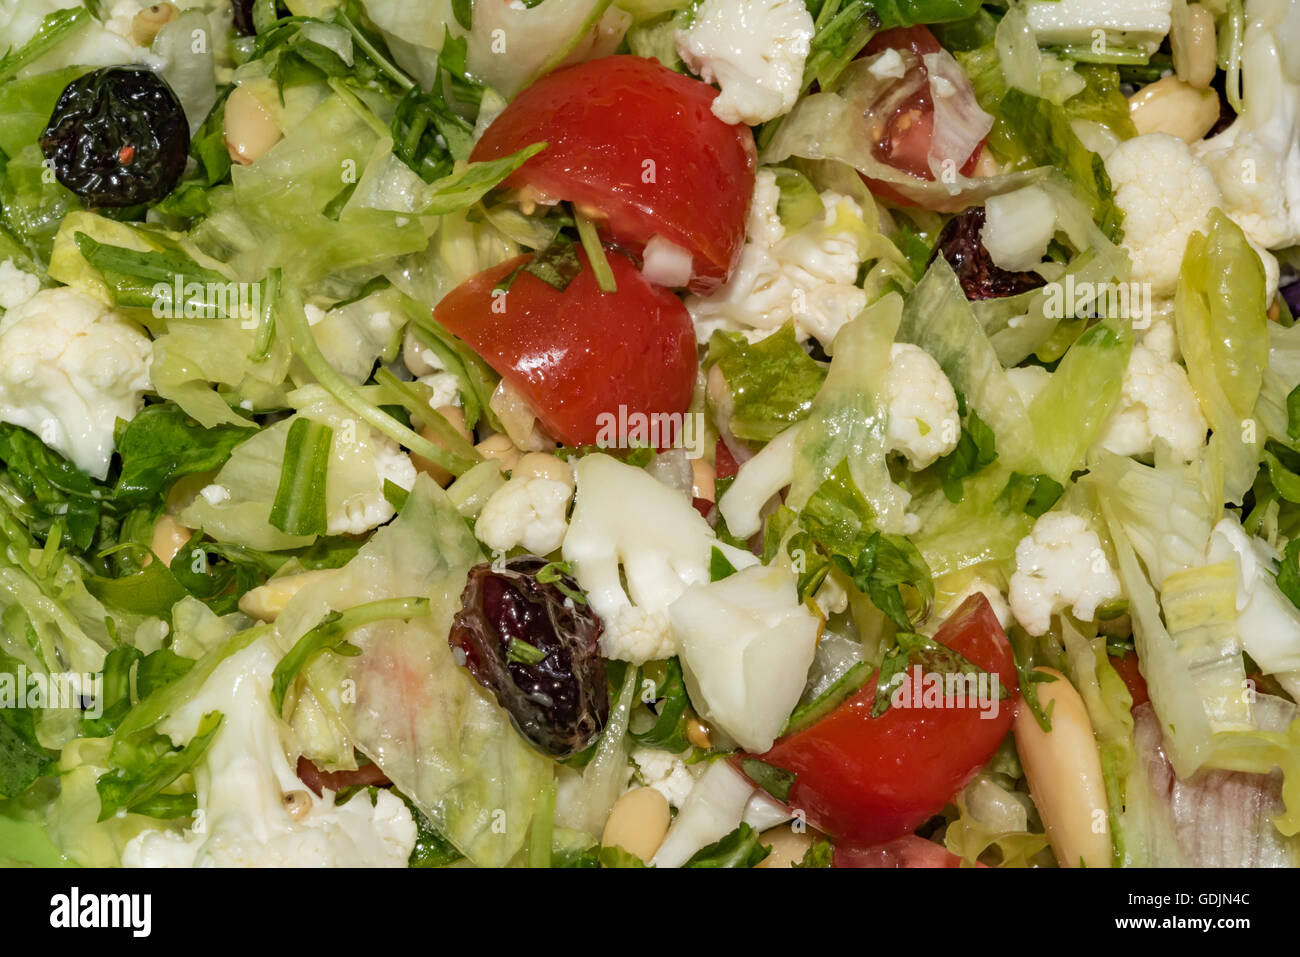 Green salad with oil droplets - Stock Image